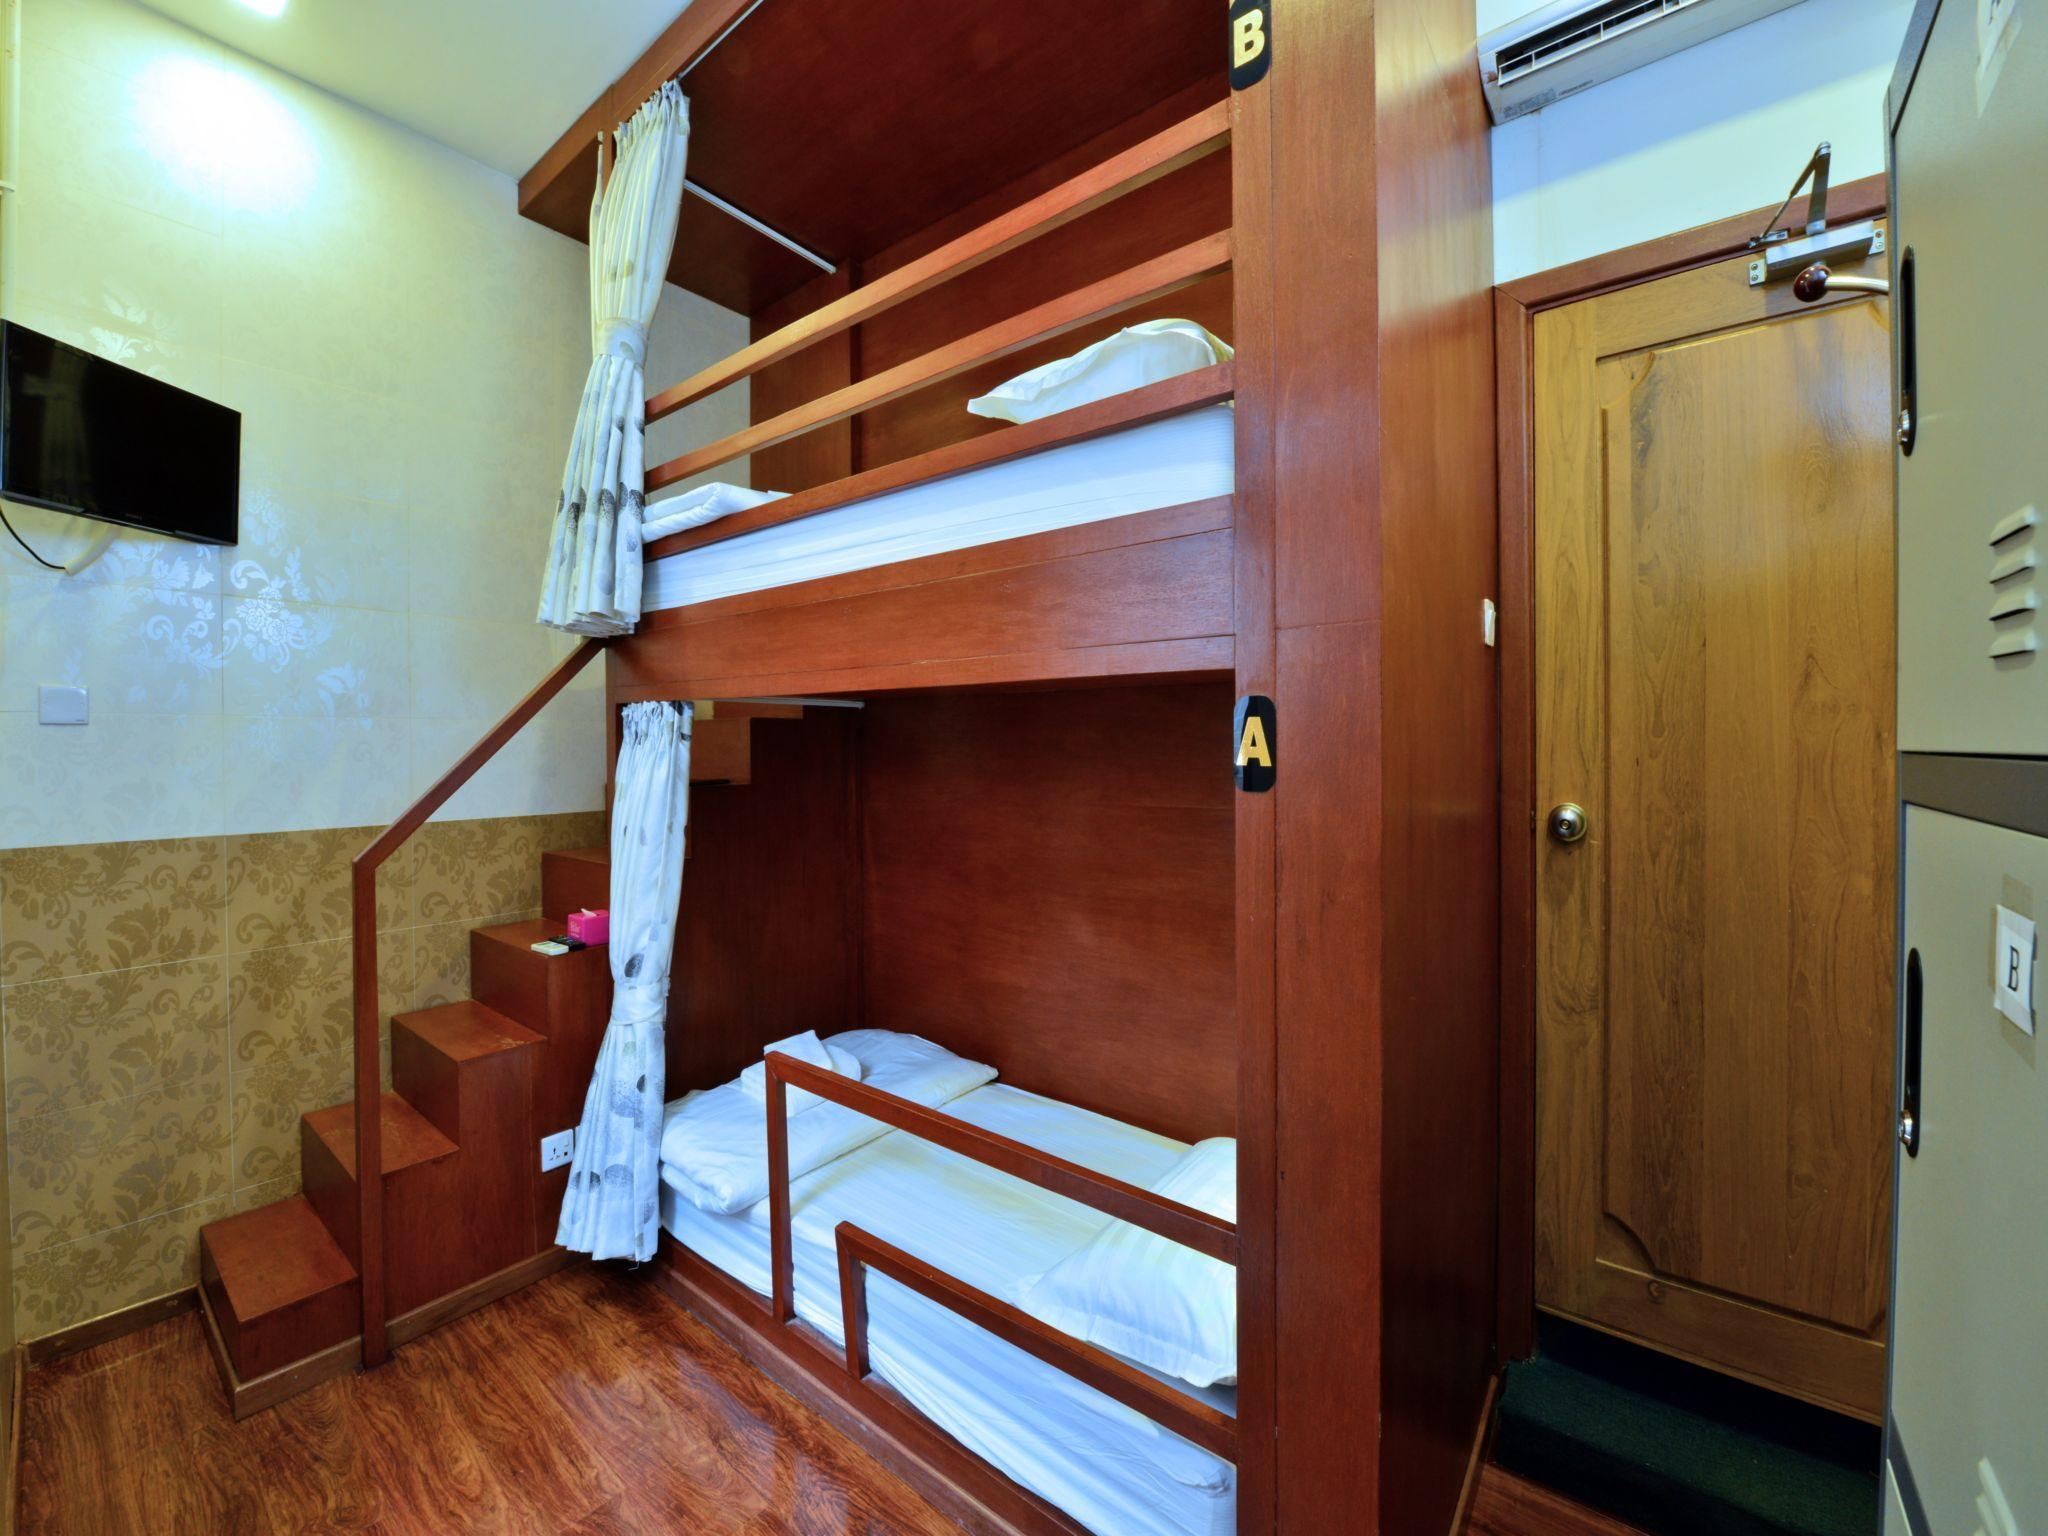 2床女生宿舍(1人床位) (1 Person in 2-Bed Dormitory - Female Only)